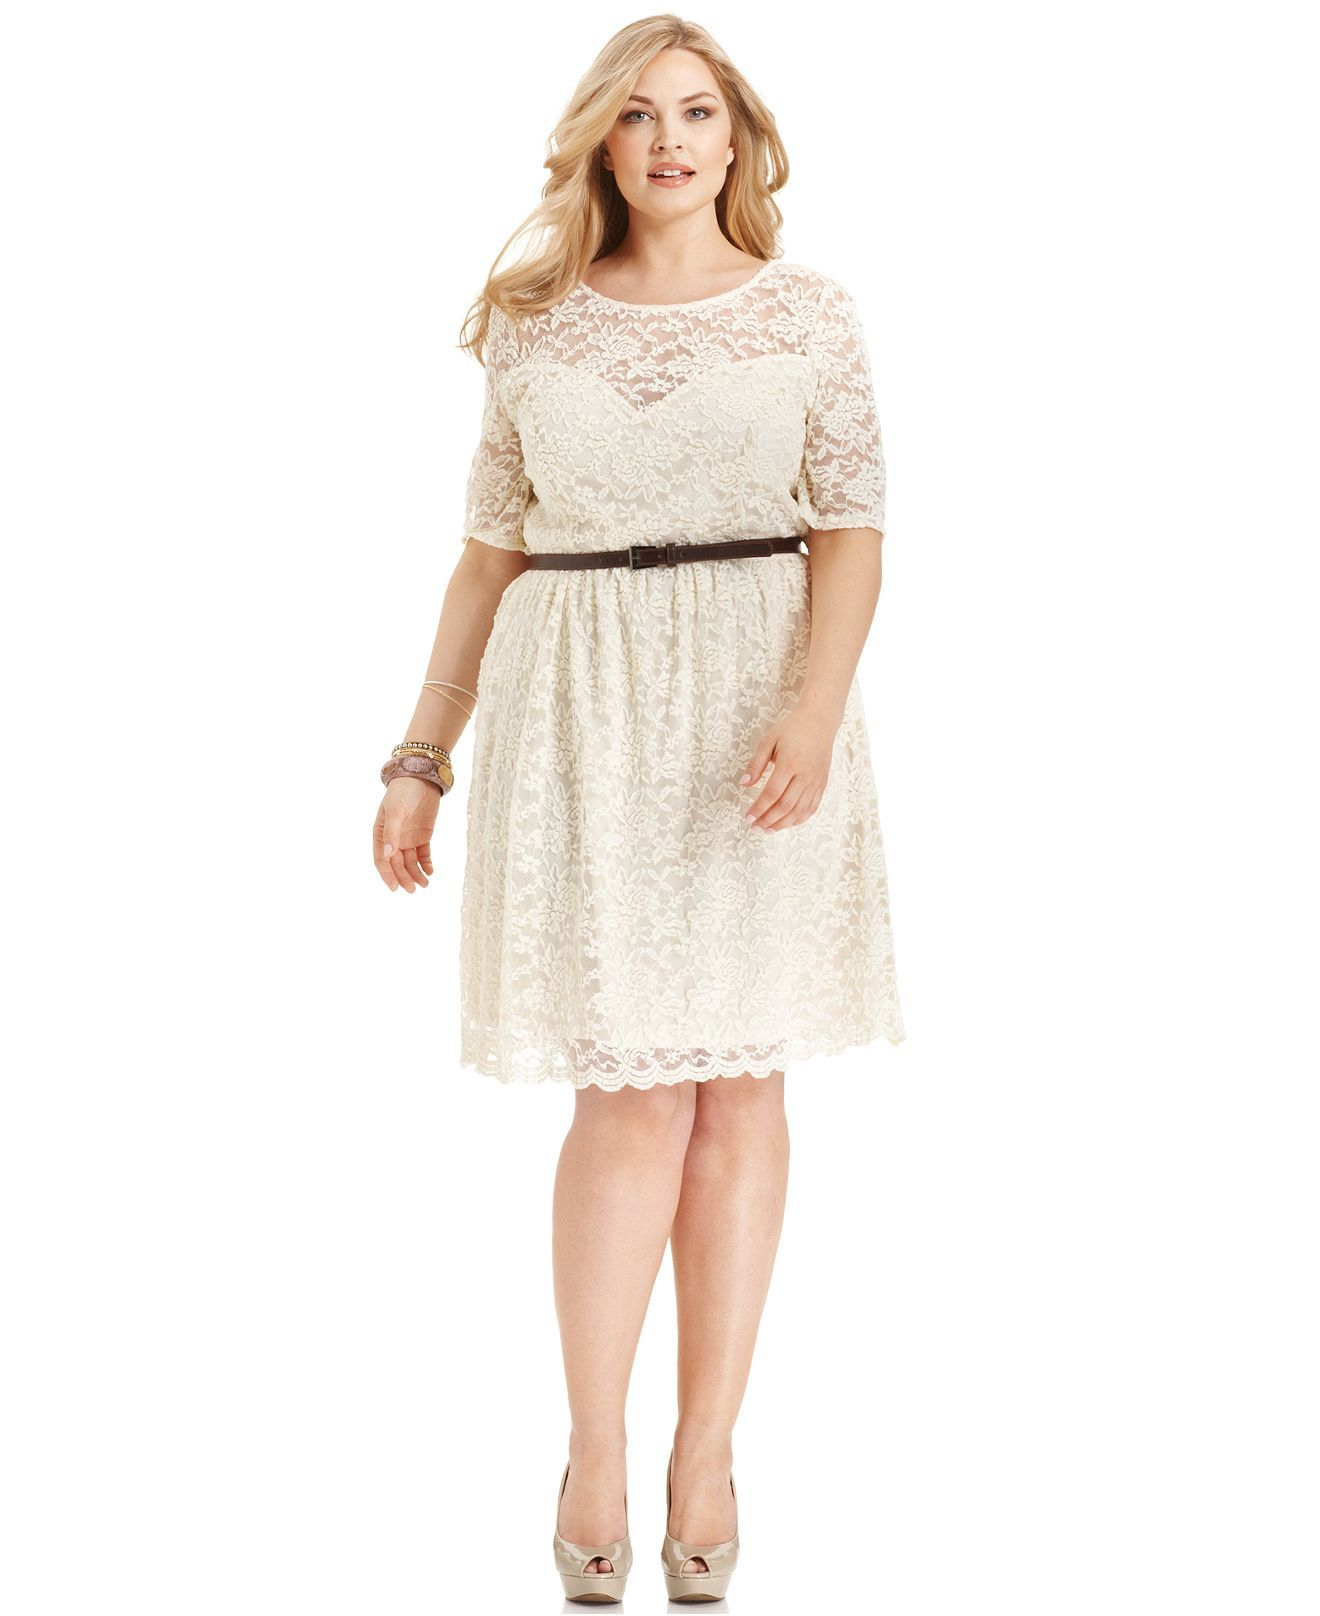 Plus size dresses for junior